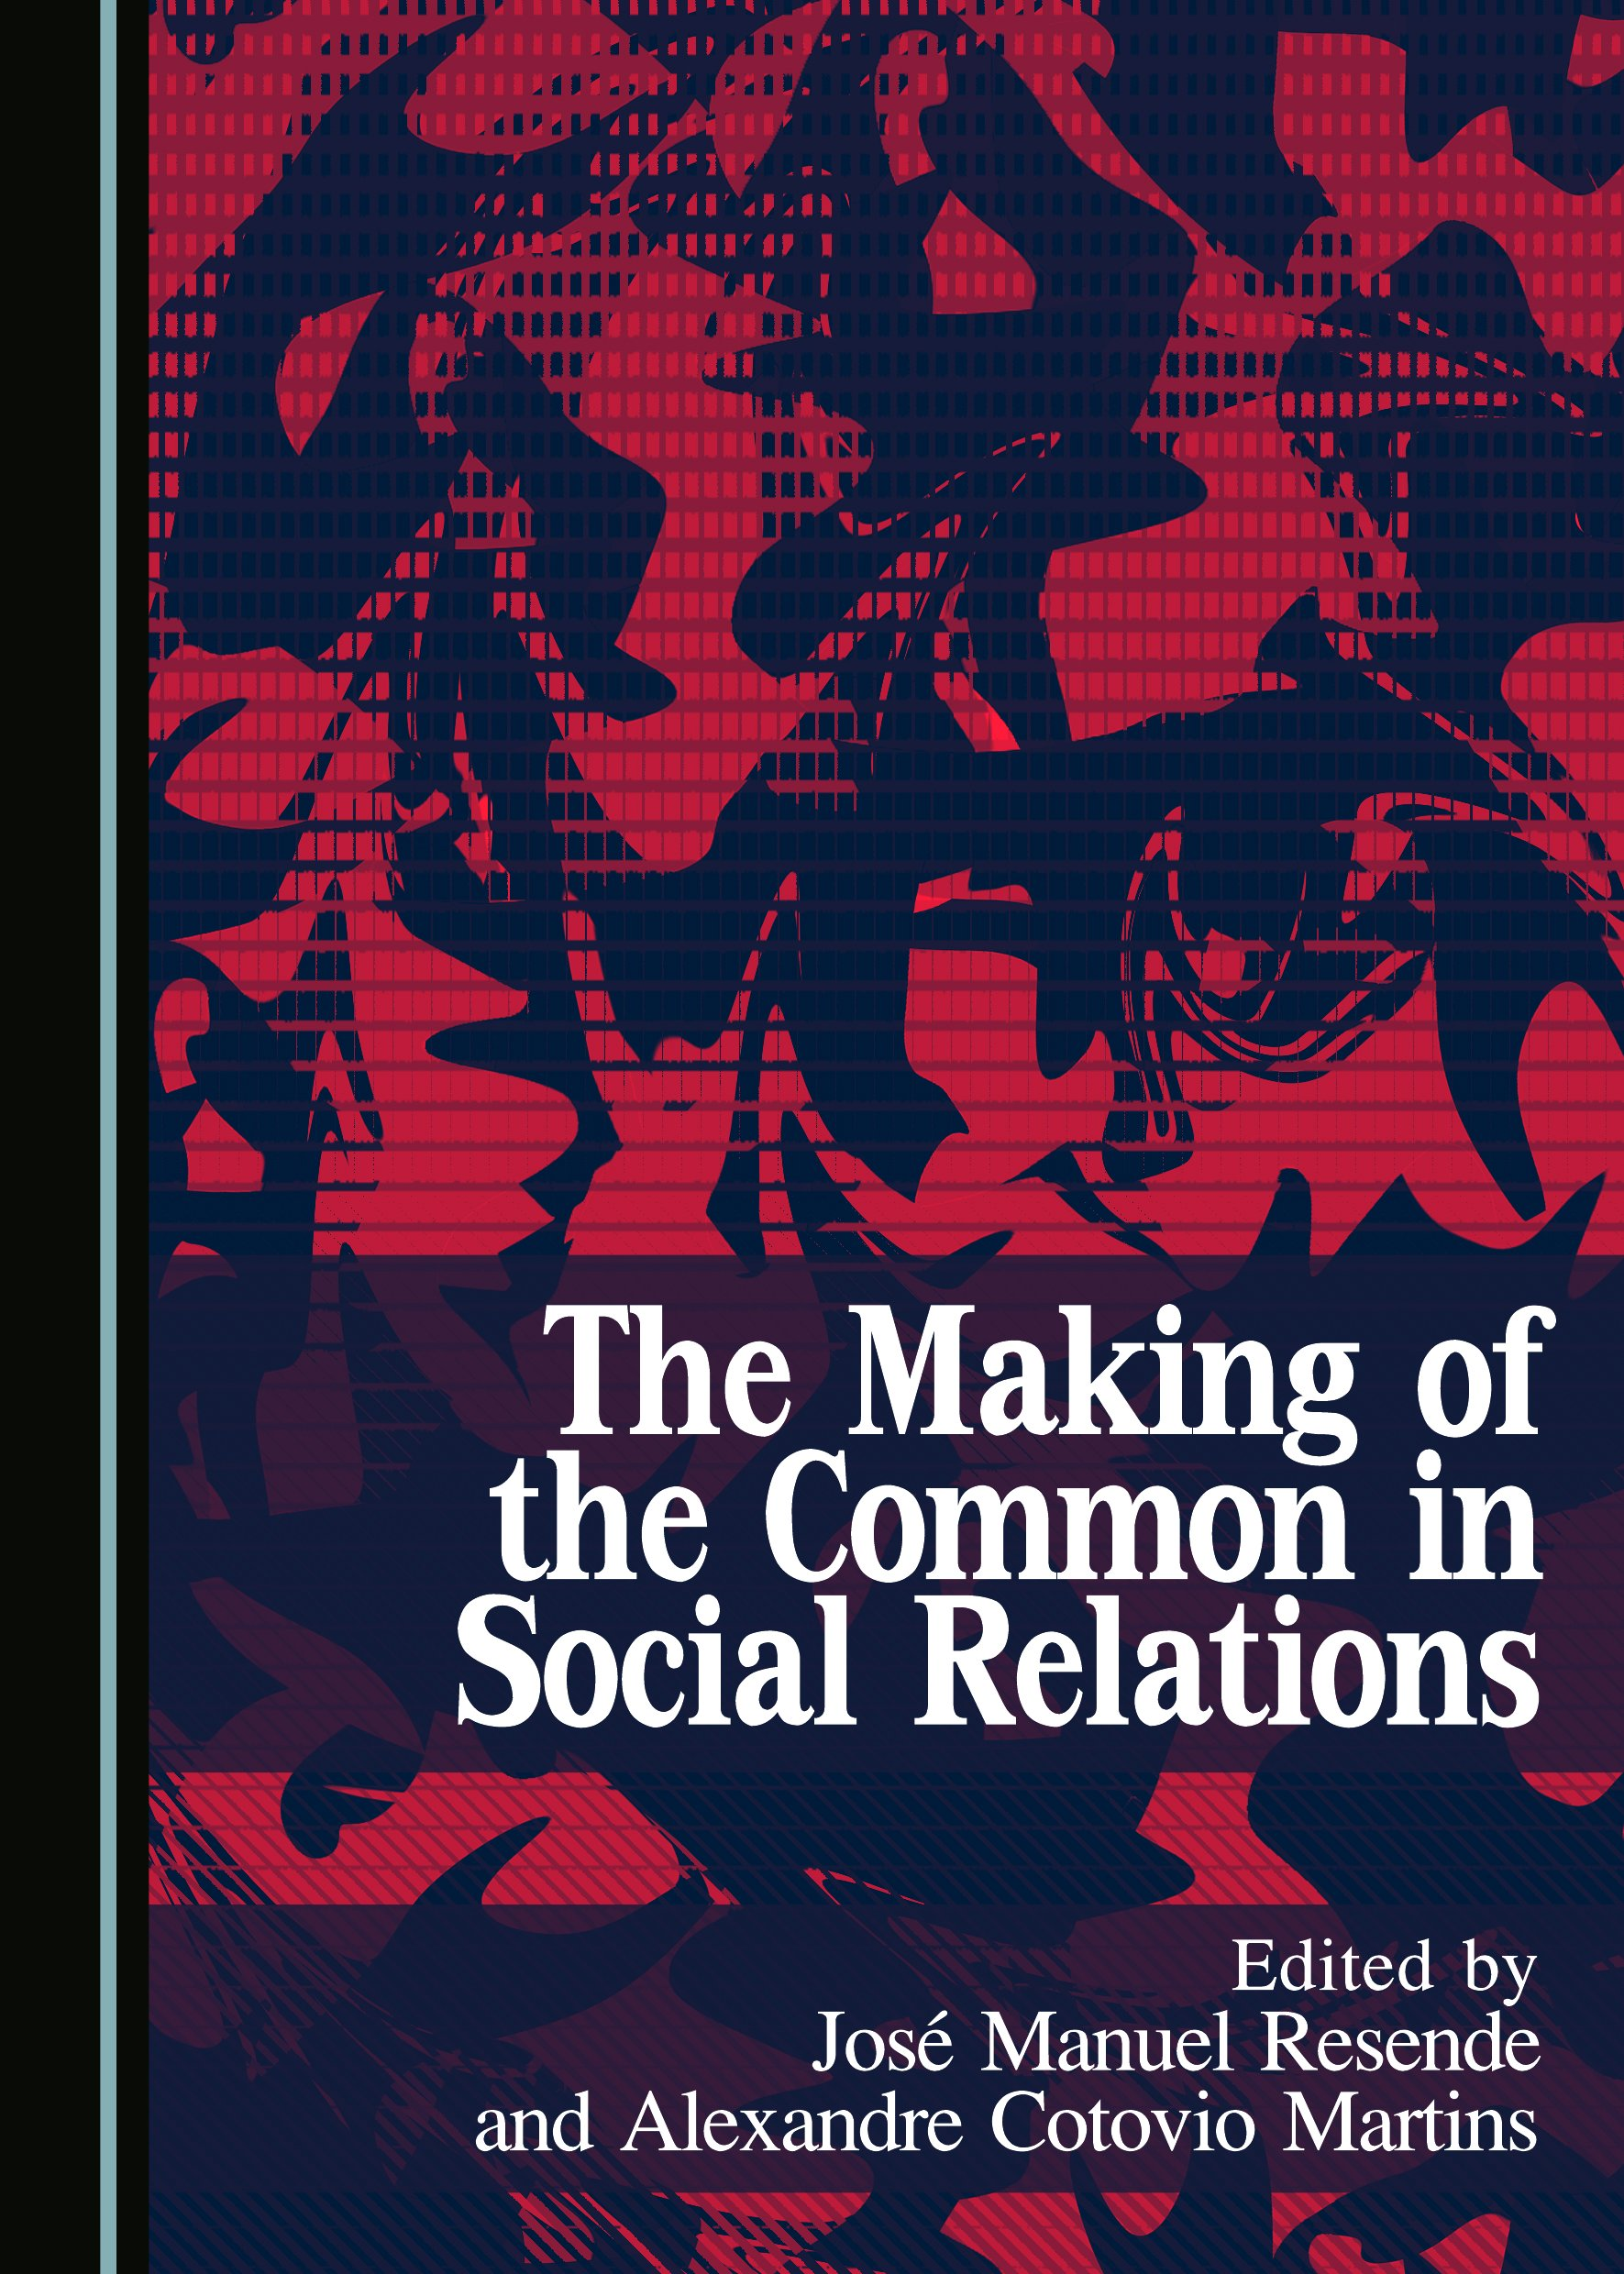 The Making of the Common in Social Relations